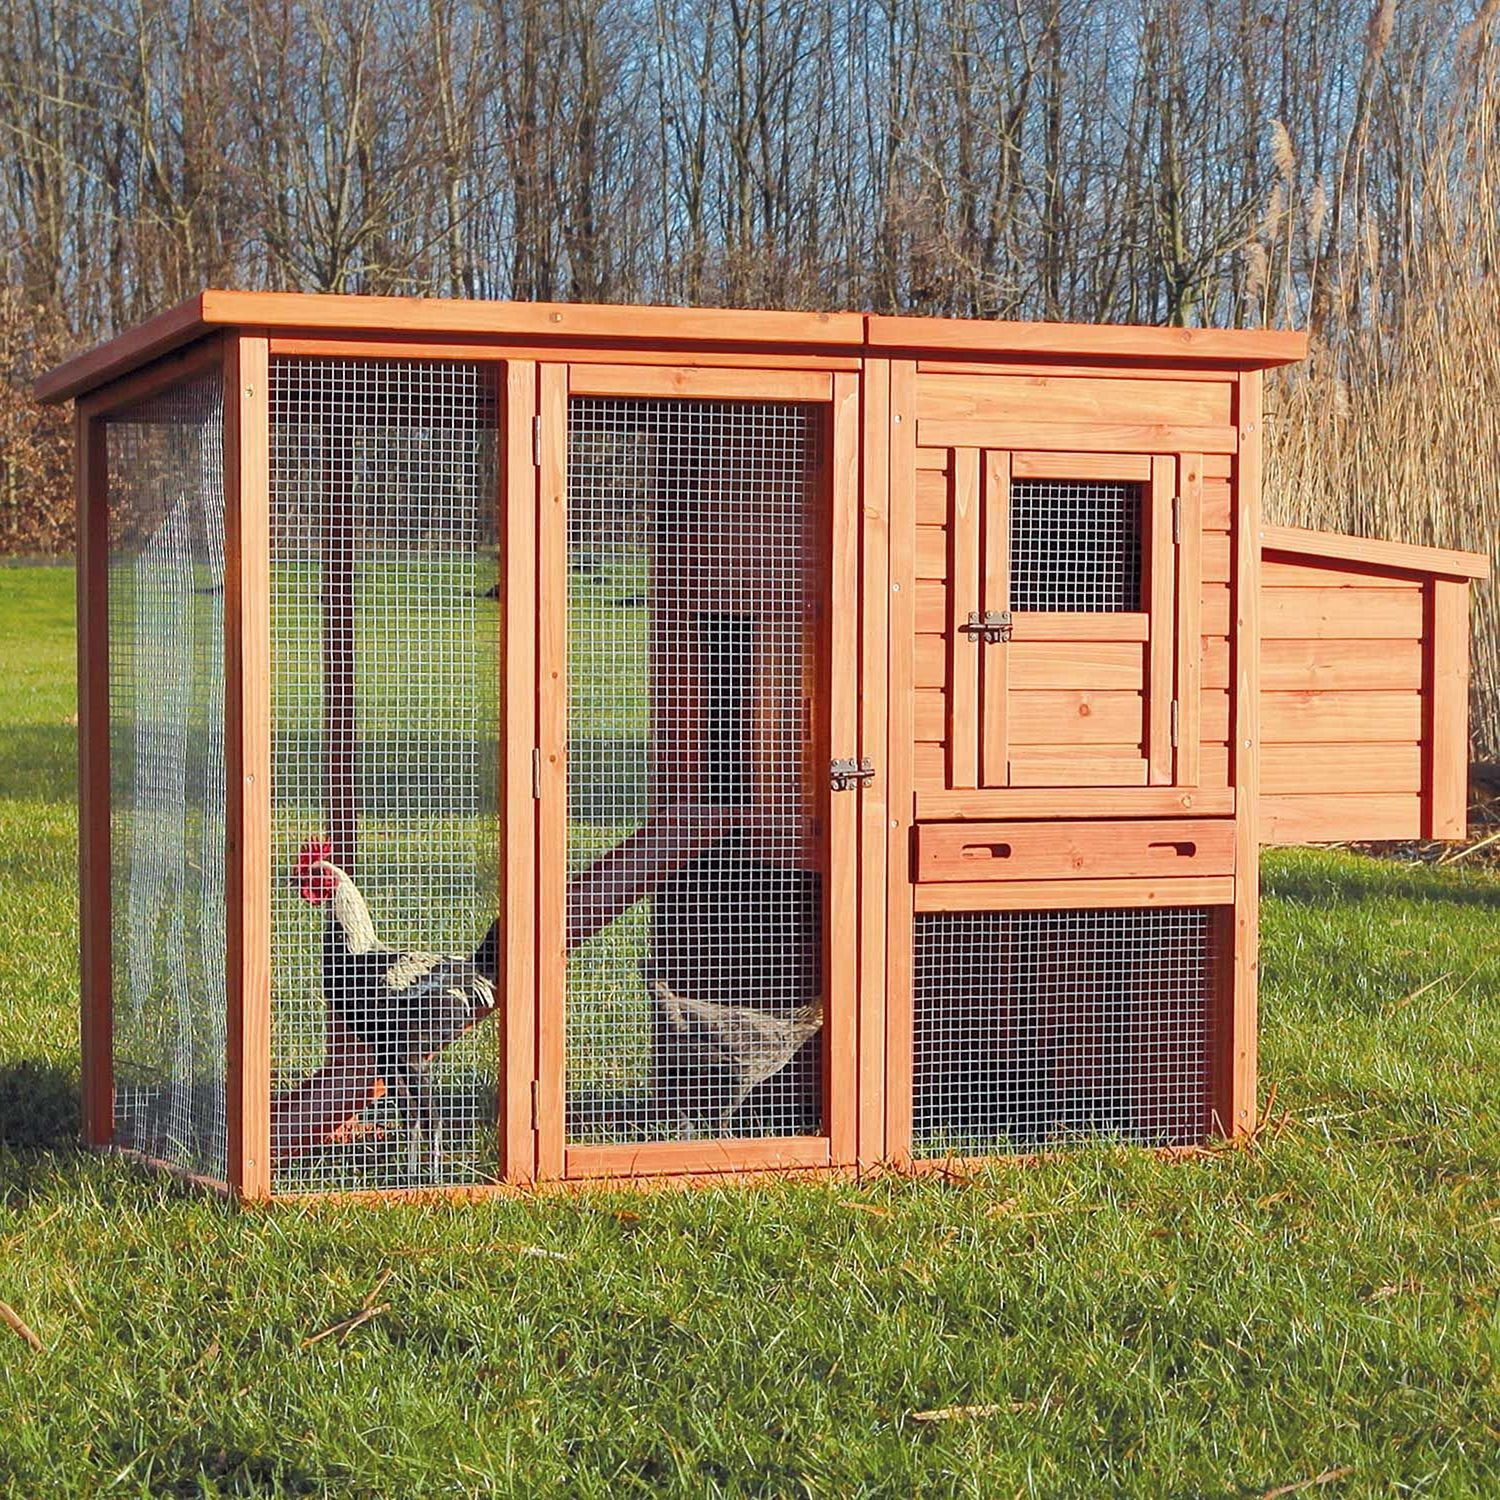 75 Creative And Low Budget DIY Chicken Coop Ideas For Your Backyard